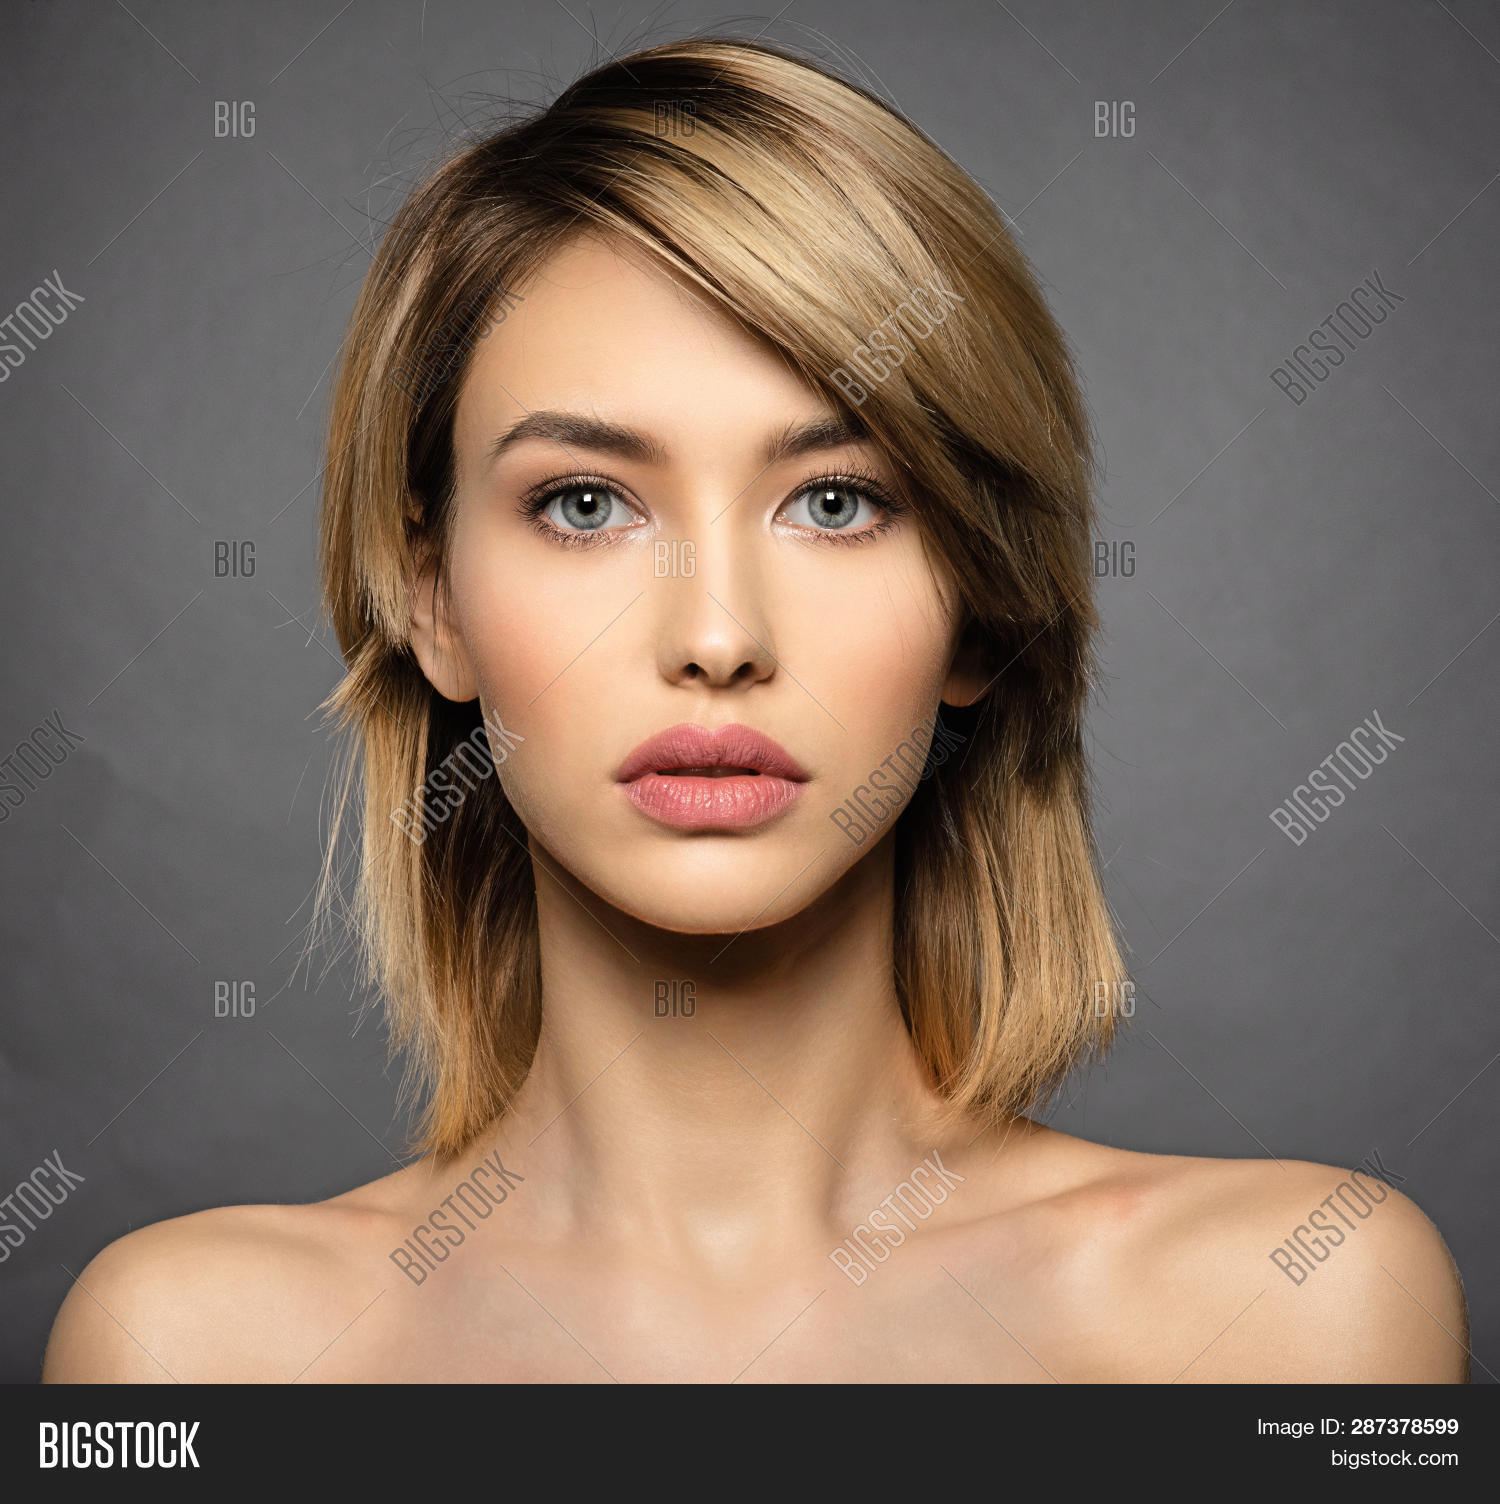 beautiful,beauty,beauty treatment,black background,blond,blonde,blue eyes,brown,brown hair,care,caucasian,closeup,coiffure,curly,curly hair,face,fashion,female,fringe,girl,glamour,hair,hairdo,hairstyle,health,healthy,isolate,long,makeup,medium length,model,one,portrait,pretty,salon,sexy,short,skin,skin care,smokey,smokey makeup,style,woman,women